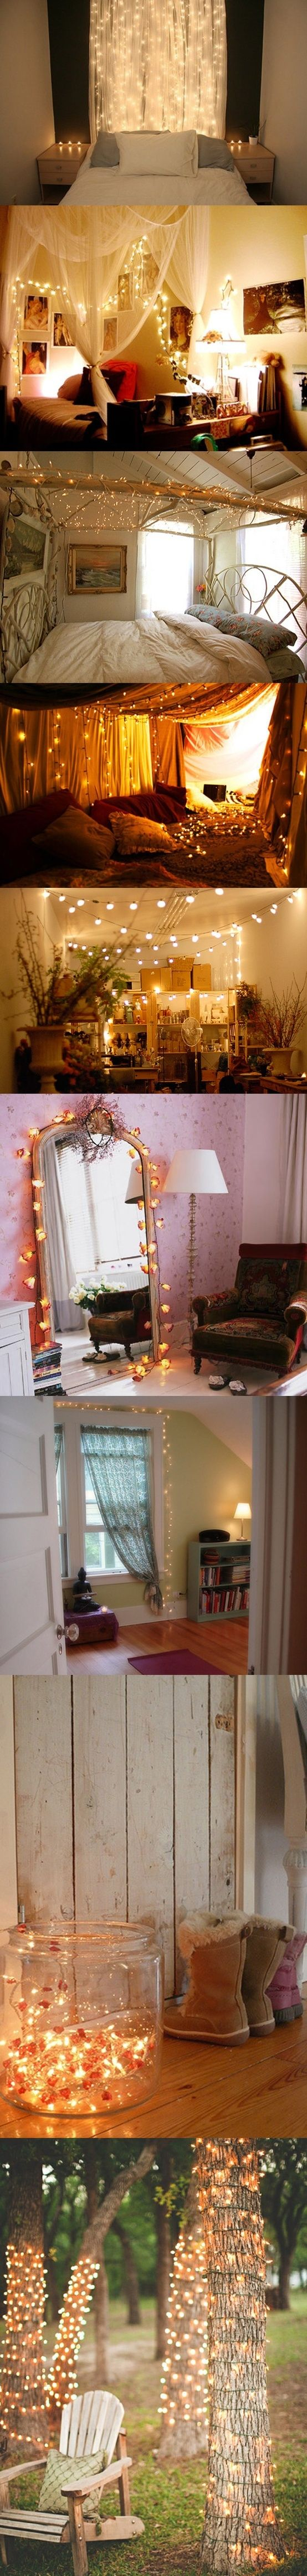 27 Incredible DIY Christmas Lights Decorating Projects-homesthetics (2)